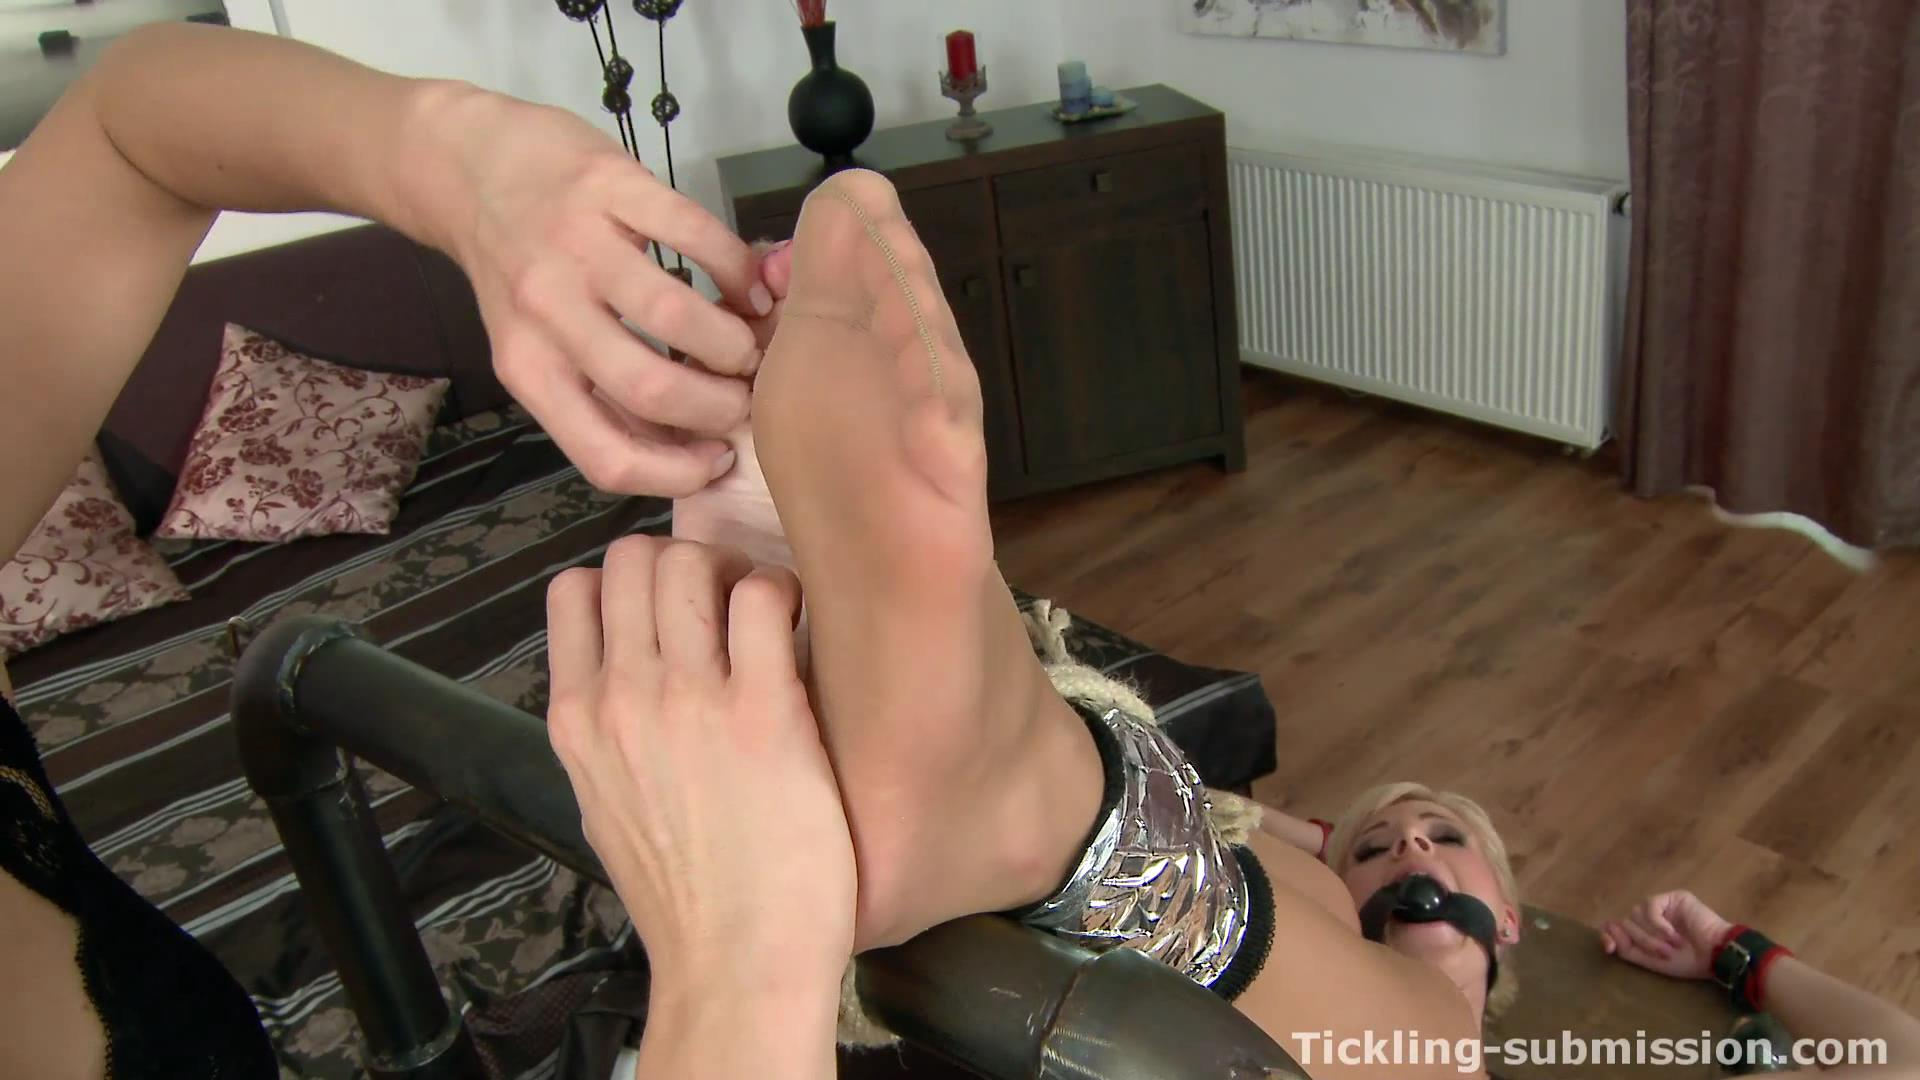 clips of foot tickling asian sex hd